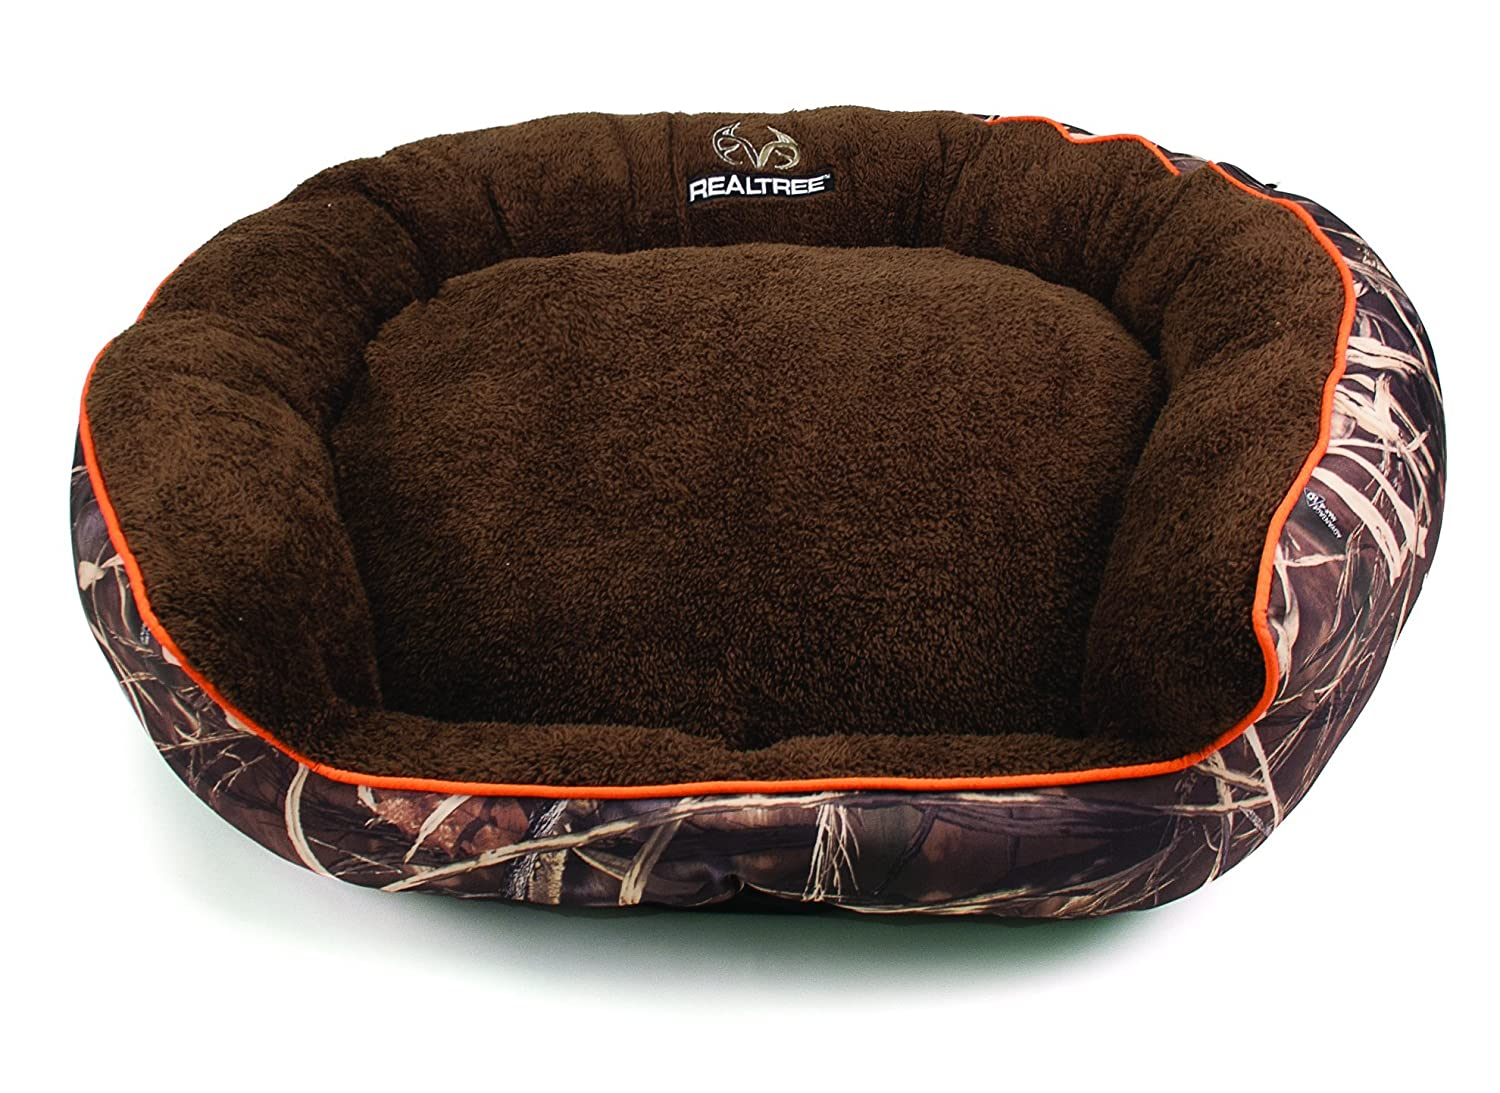 Dallas FOV3630-160.1 Realtree Large Max5 Bolstered Pet Bed, Camo with orange Piping, 36  x 30